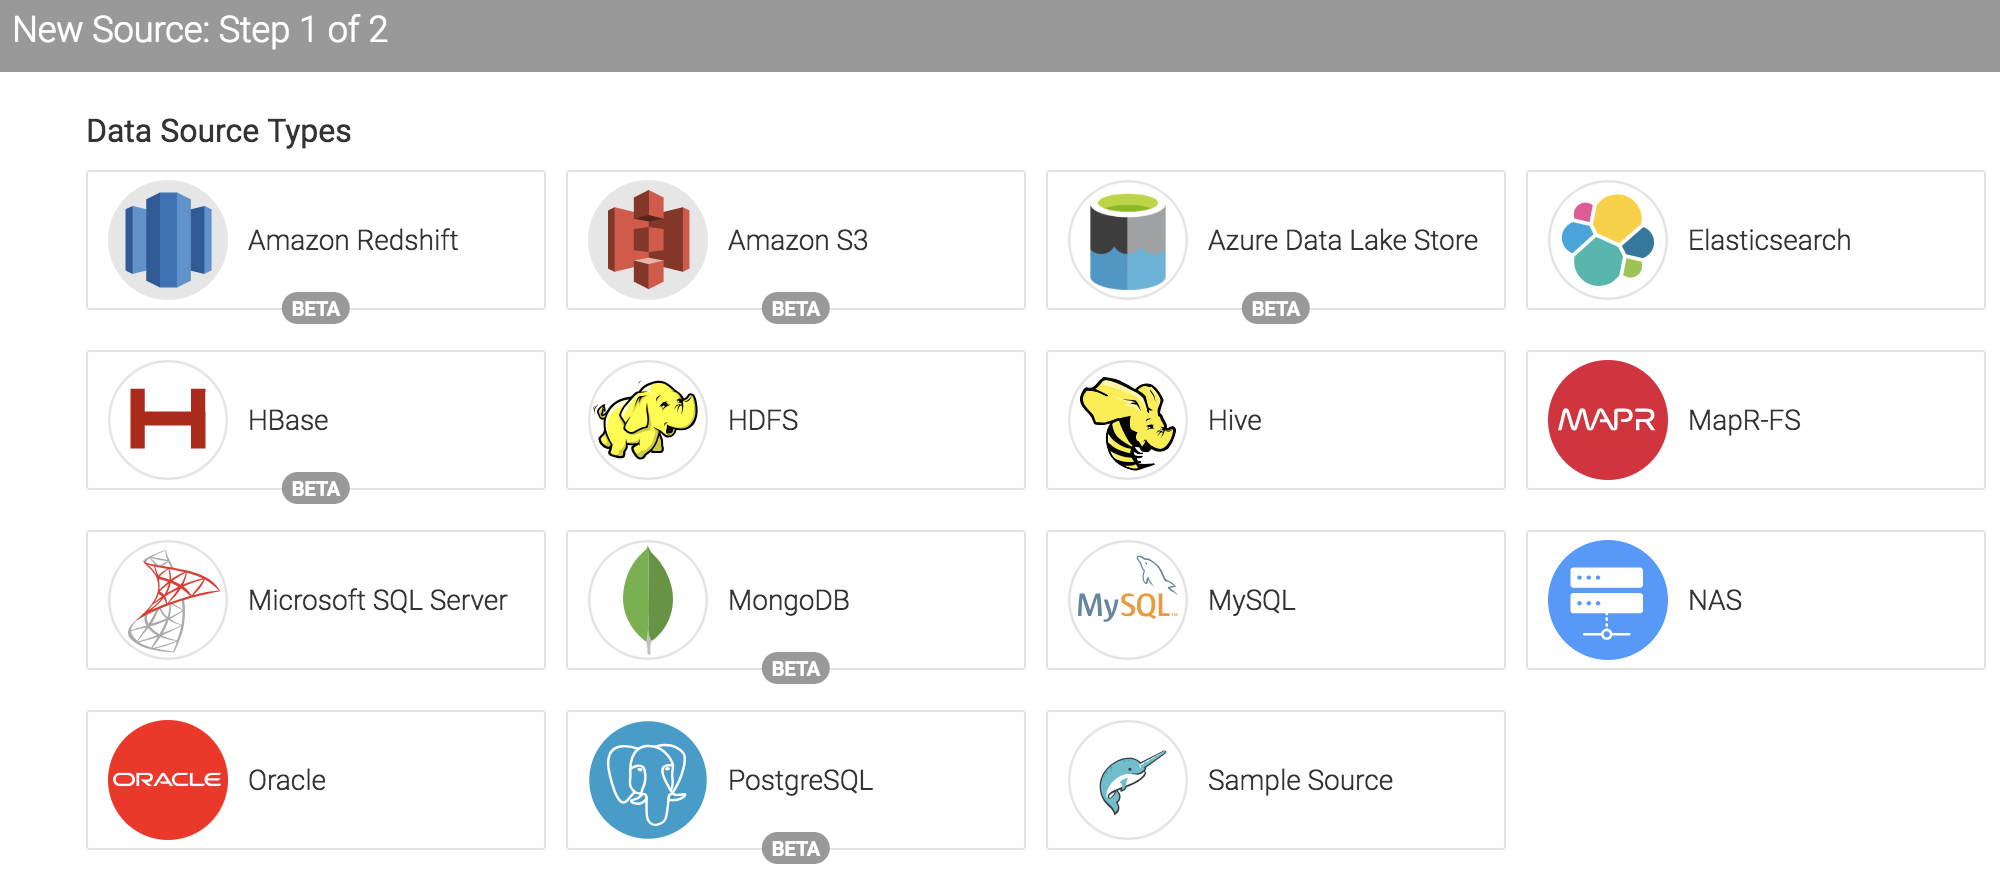 Available data sources